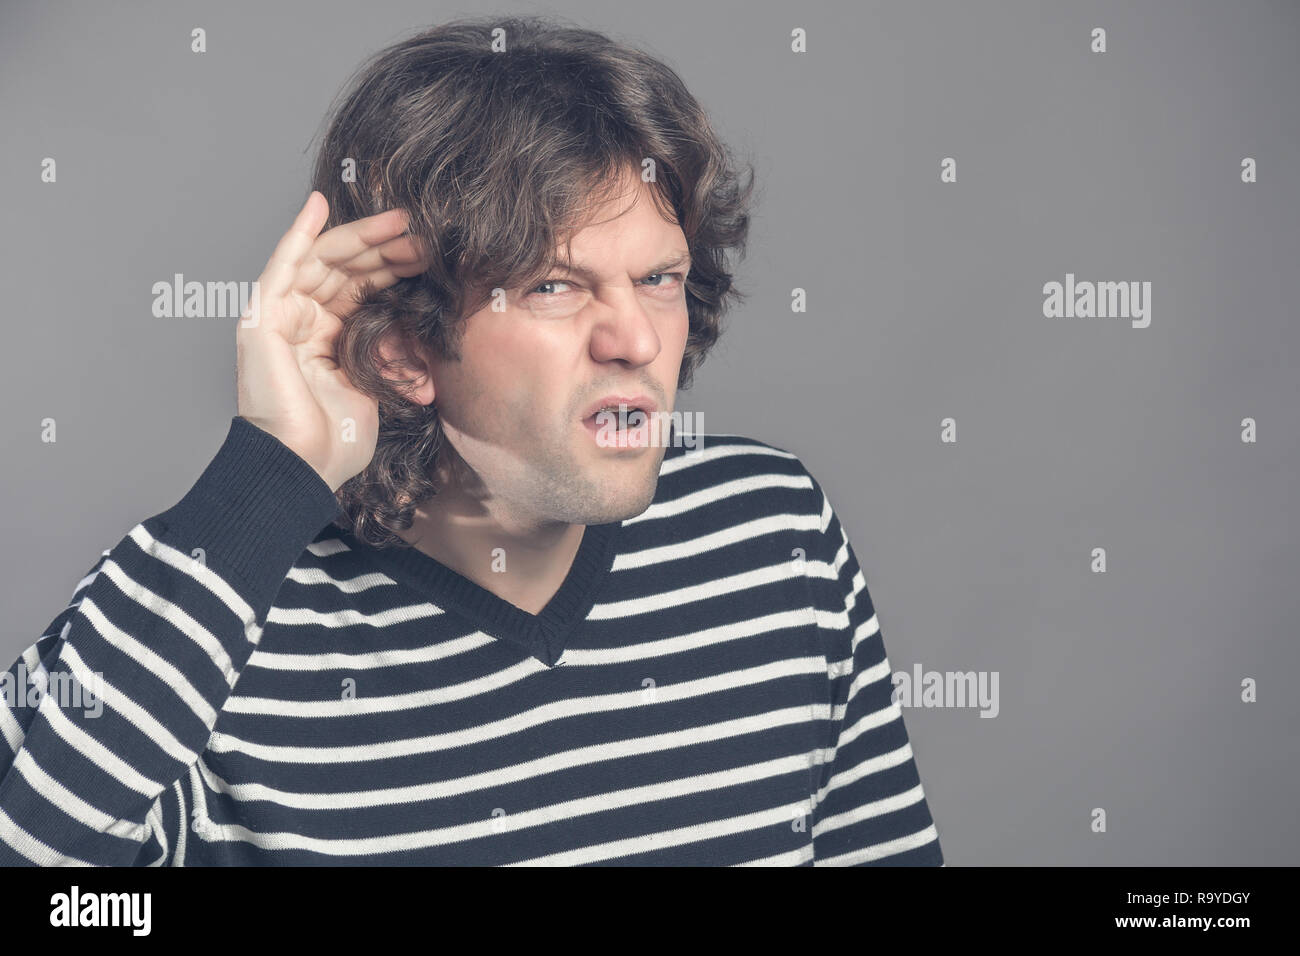 Unhappy hard of hearing man placing hand on ear asking someone to speak up or listening to bad news, isolated on gray background. Negative emotion fac - Stock Image